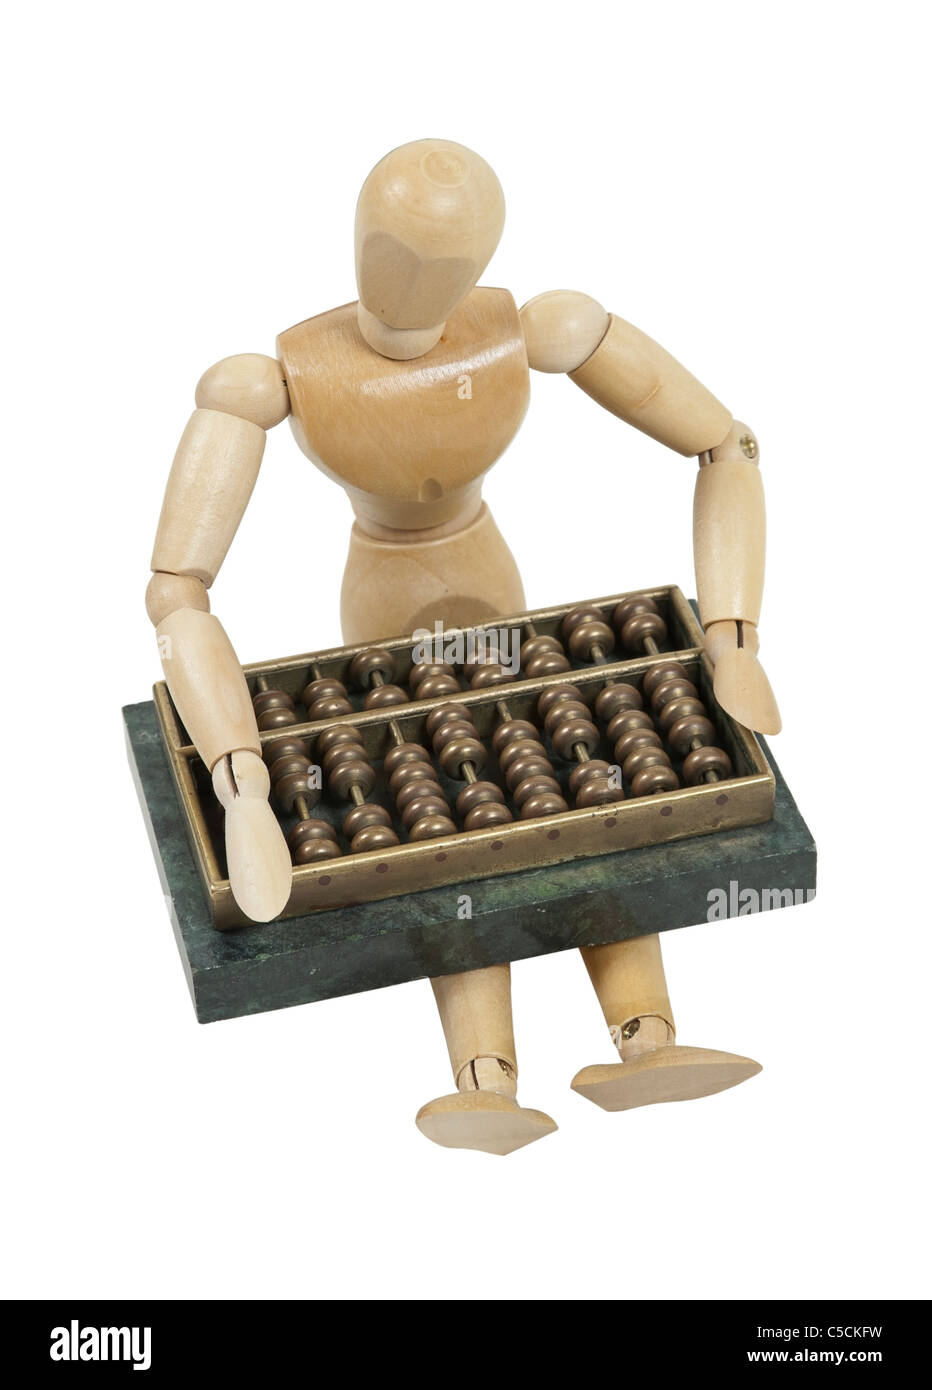 Making calculations on an abacus counting system with beads and posts - path included Stock Photo